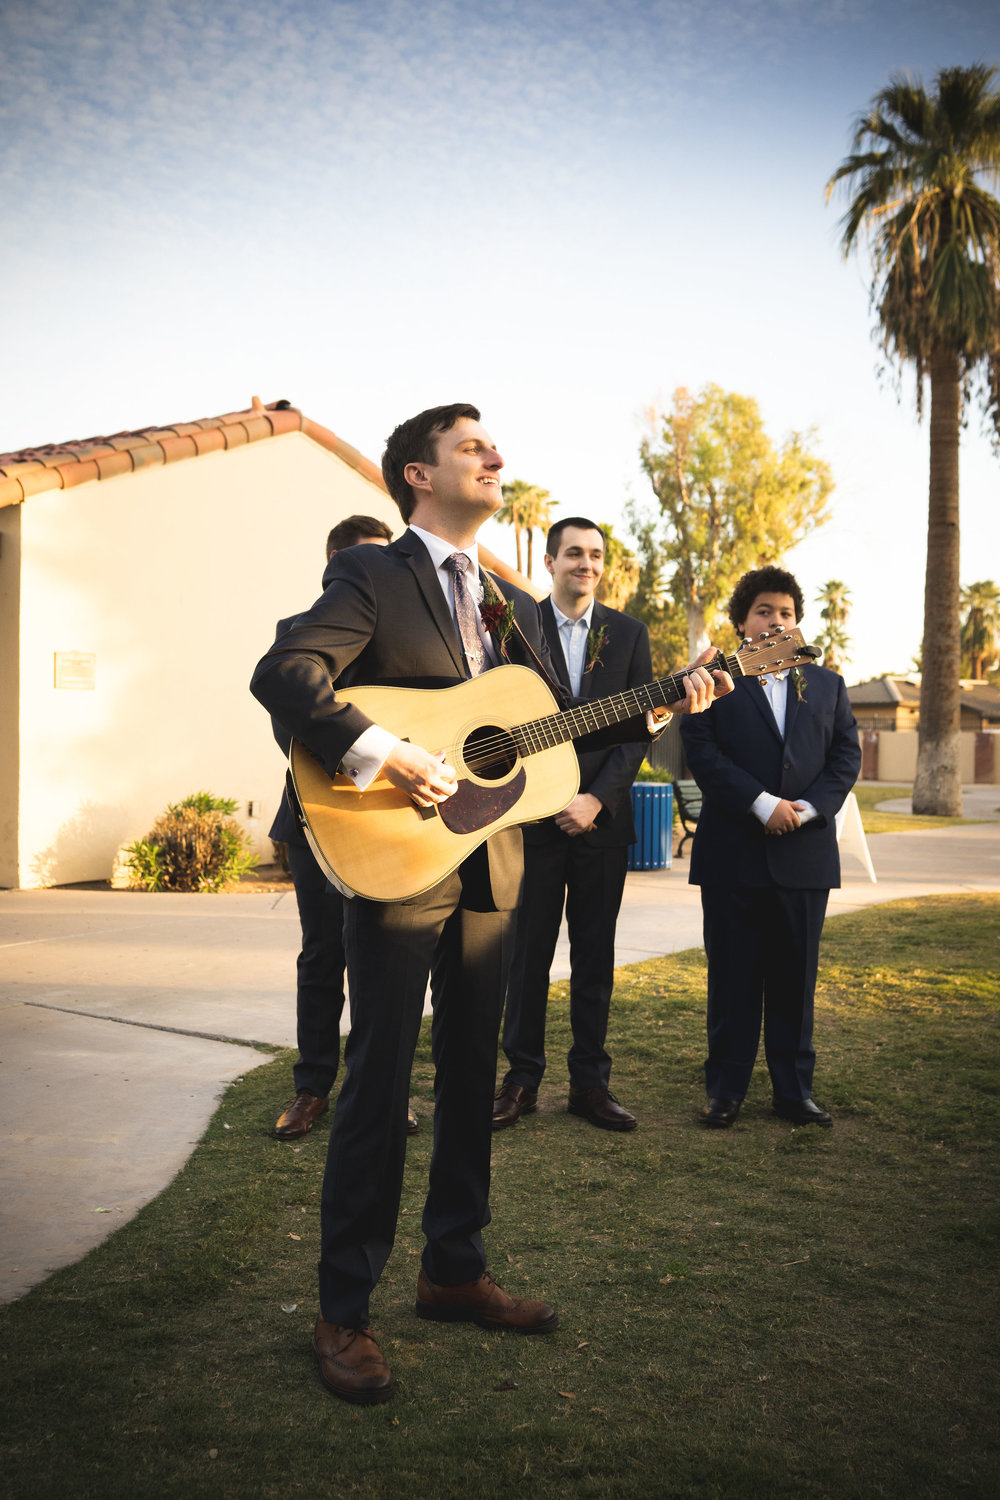 singing groom down the aisle wedding ceremony ideas cute musician groomsman